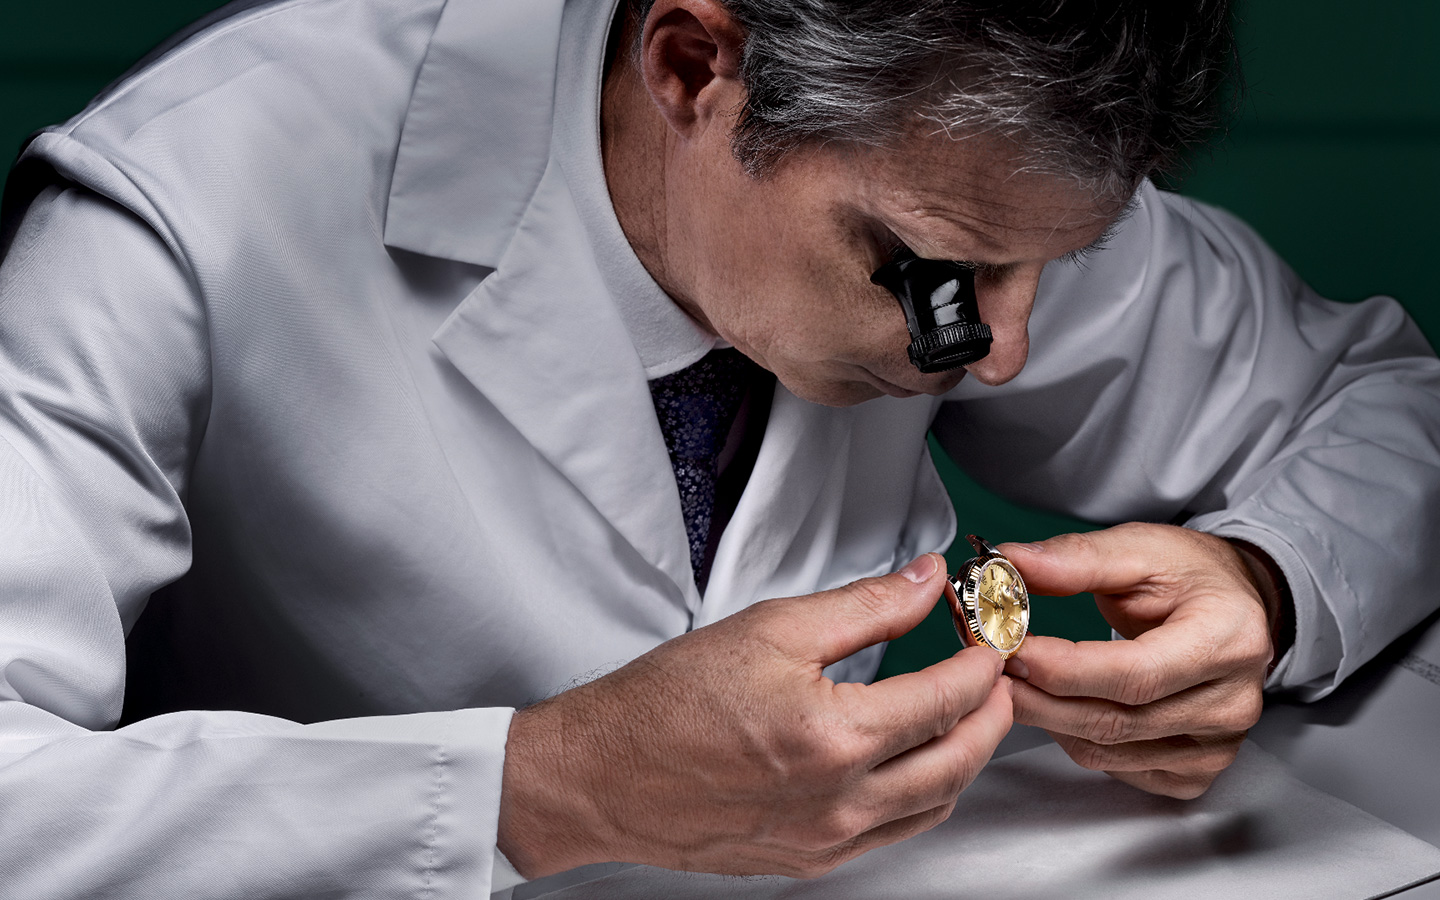 SERVICING YOUR ROLEX AT KIRK FREEPORT